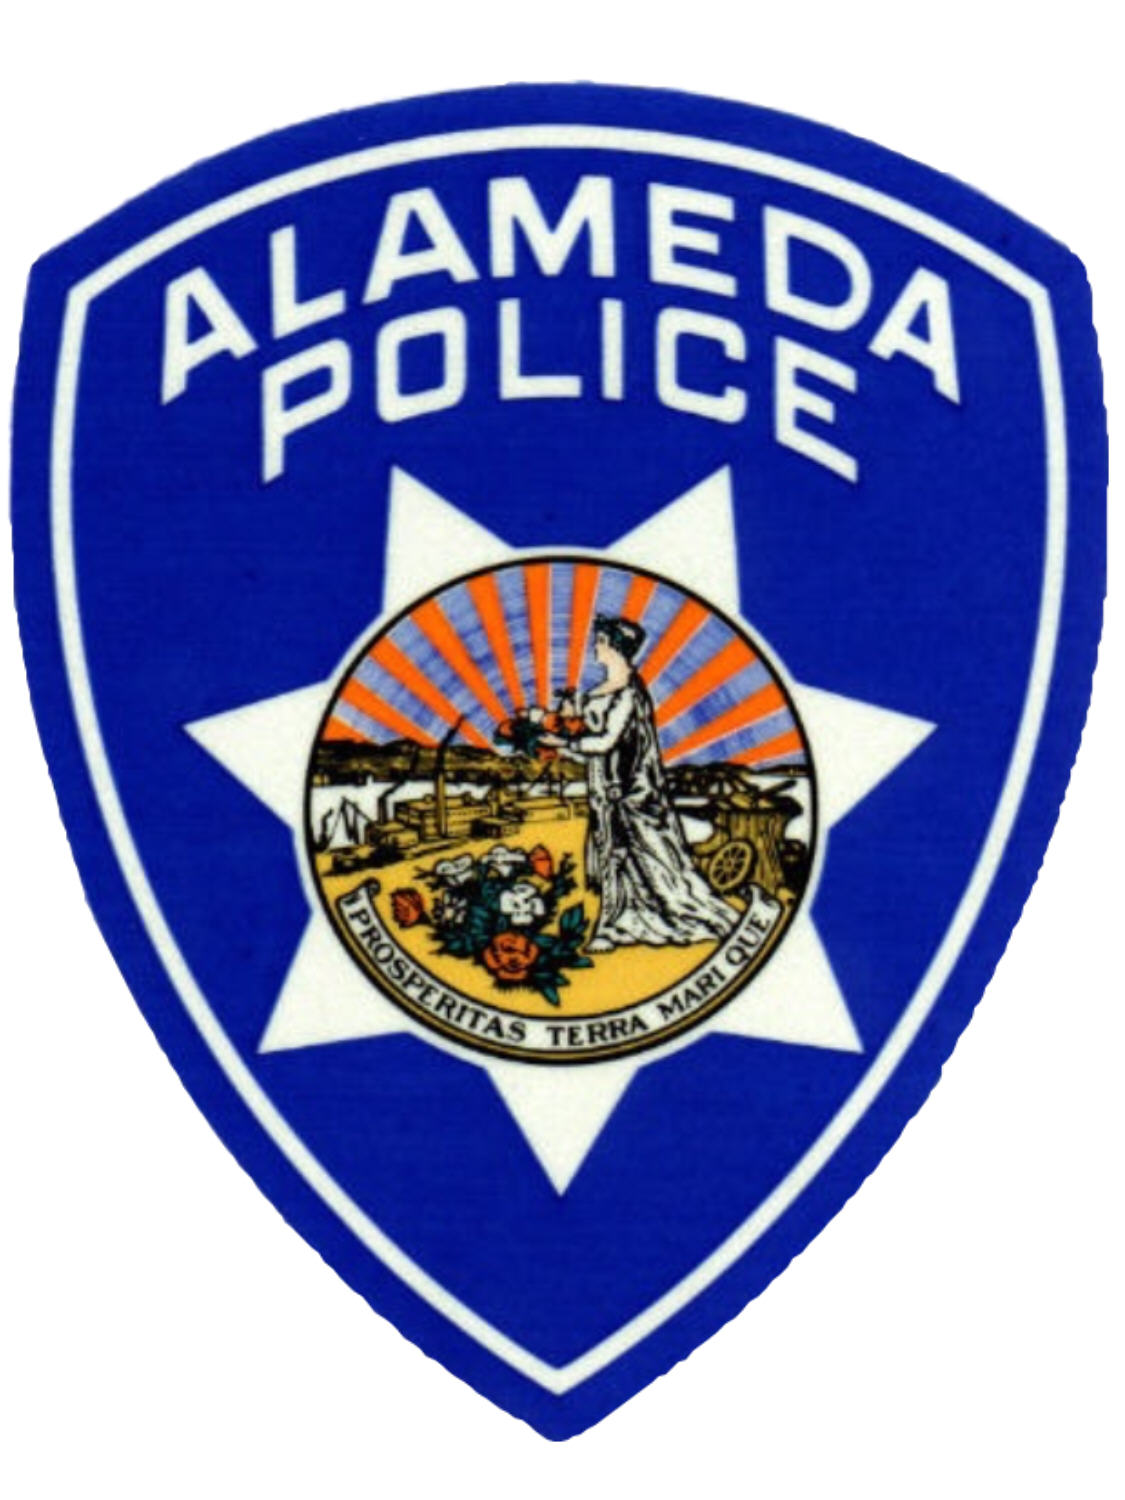 The APD shield